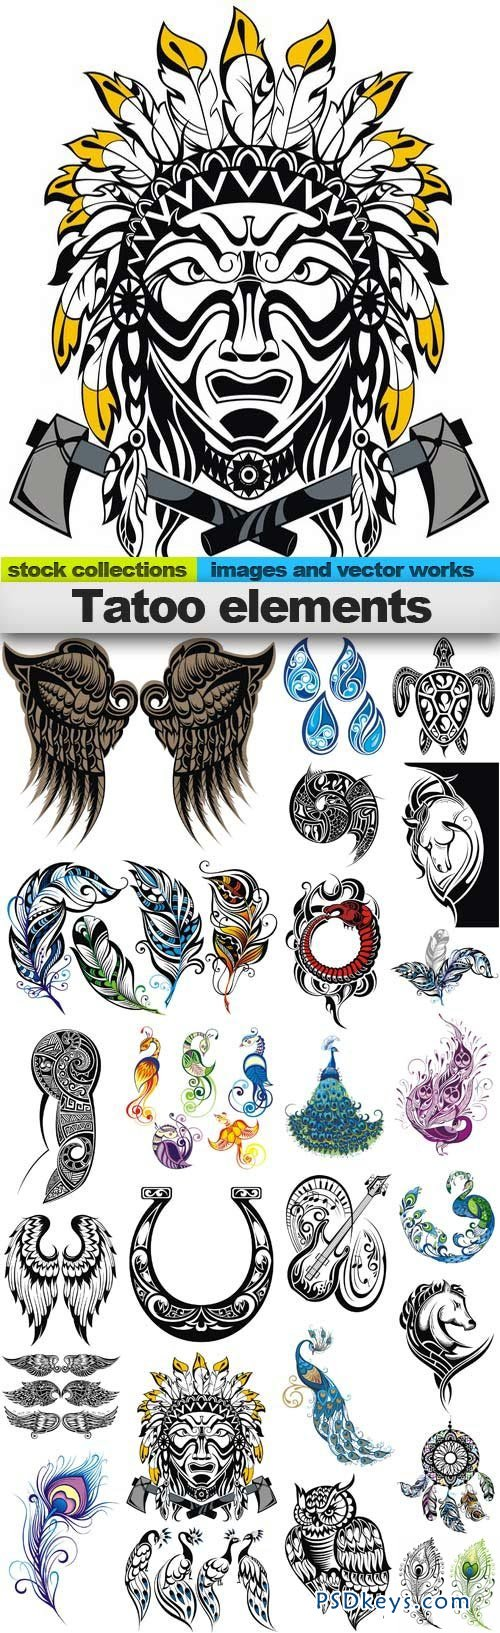 Tatoo elements 25xEPS